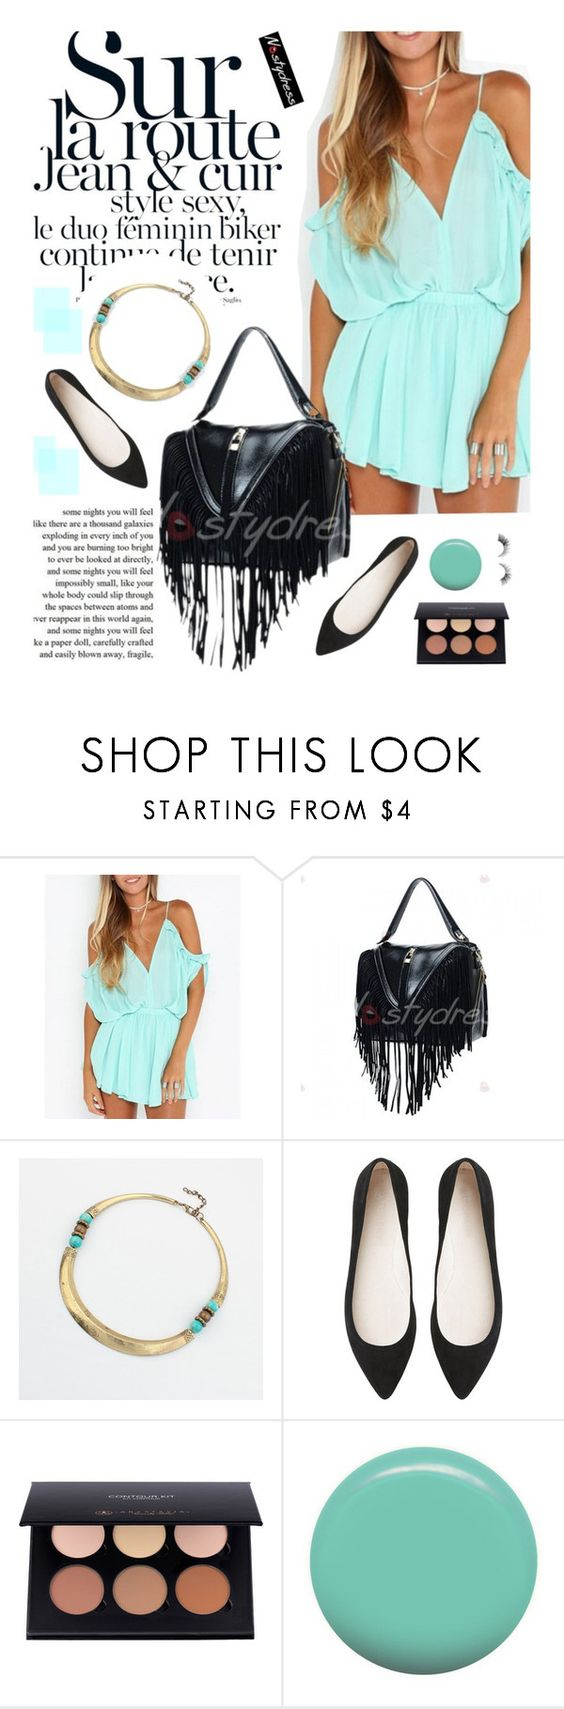 """""""Nastydress 37/1"""" by merima-kopic ❤ liked on Polyvore featuring Privé, Witchery, Jin Soon and nastydress"""